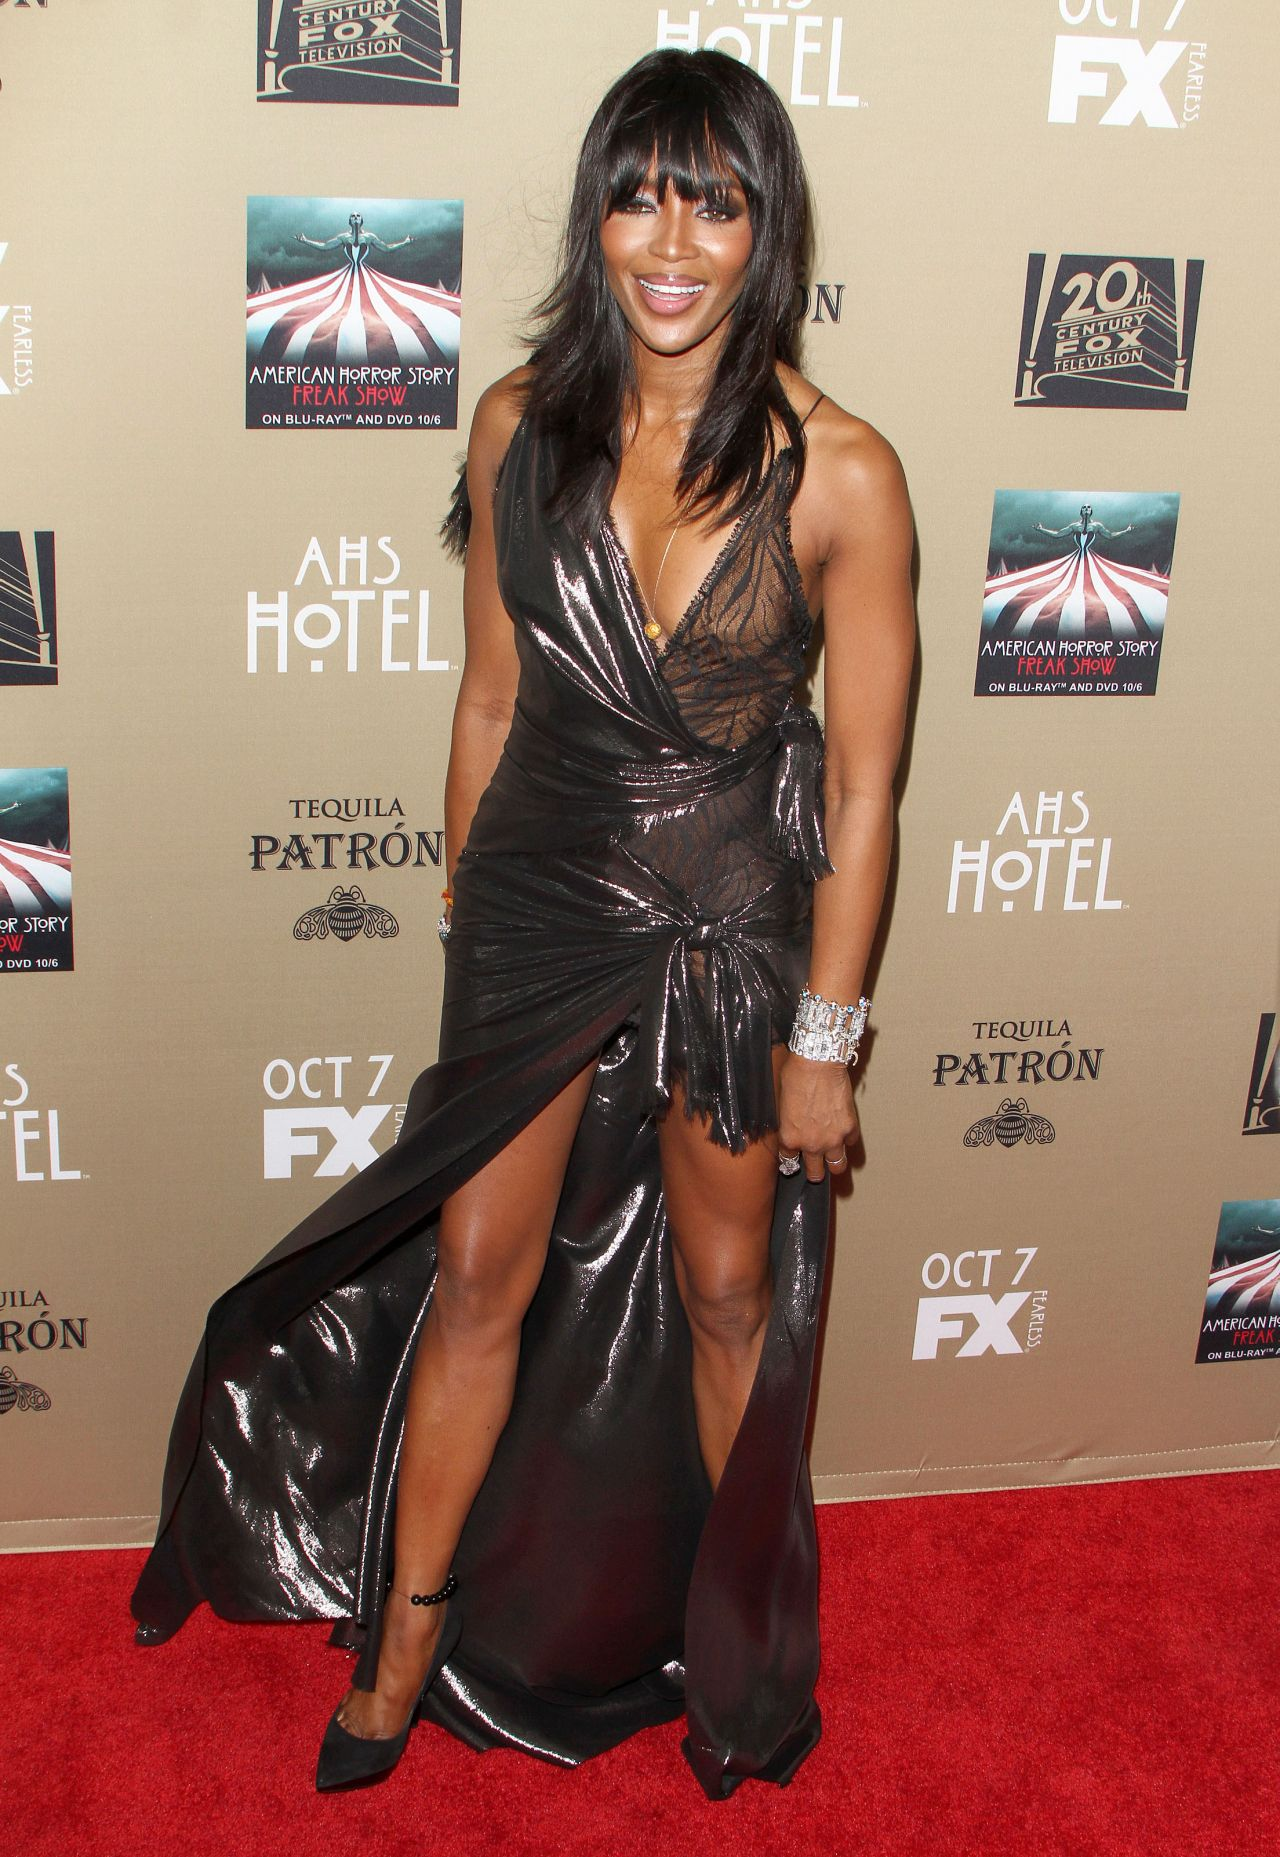 naomi-campbell-fx-s-american-horror-story-hotel-screening-in-los-angeles_3